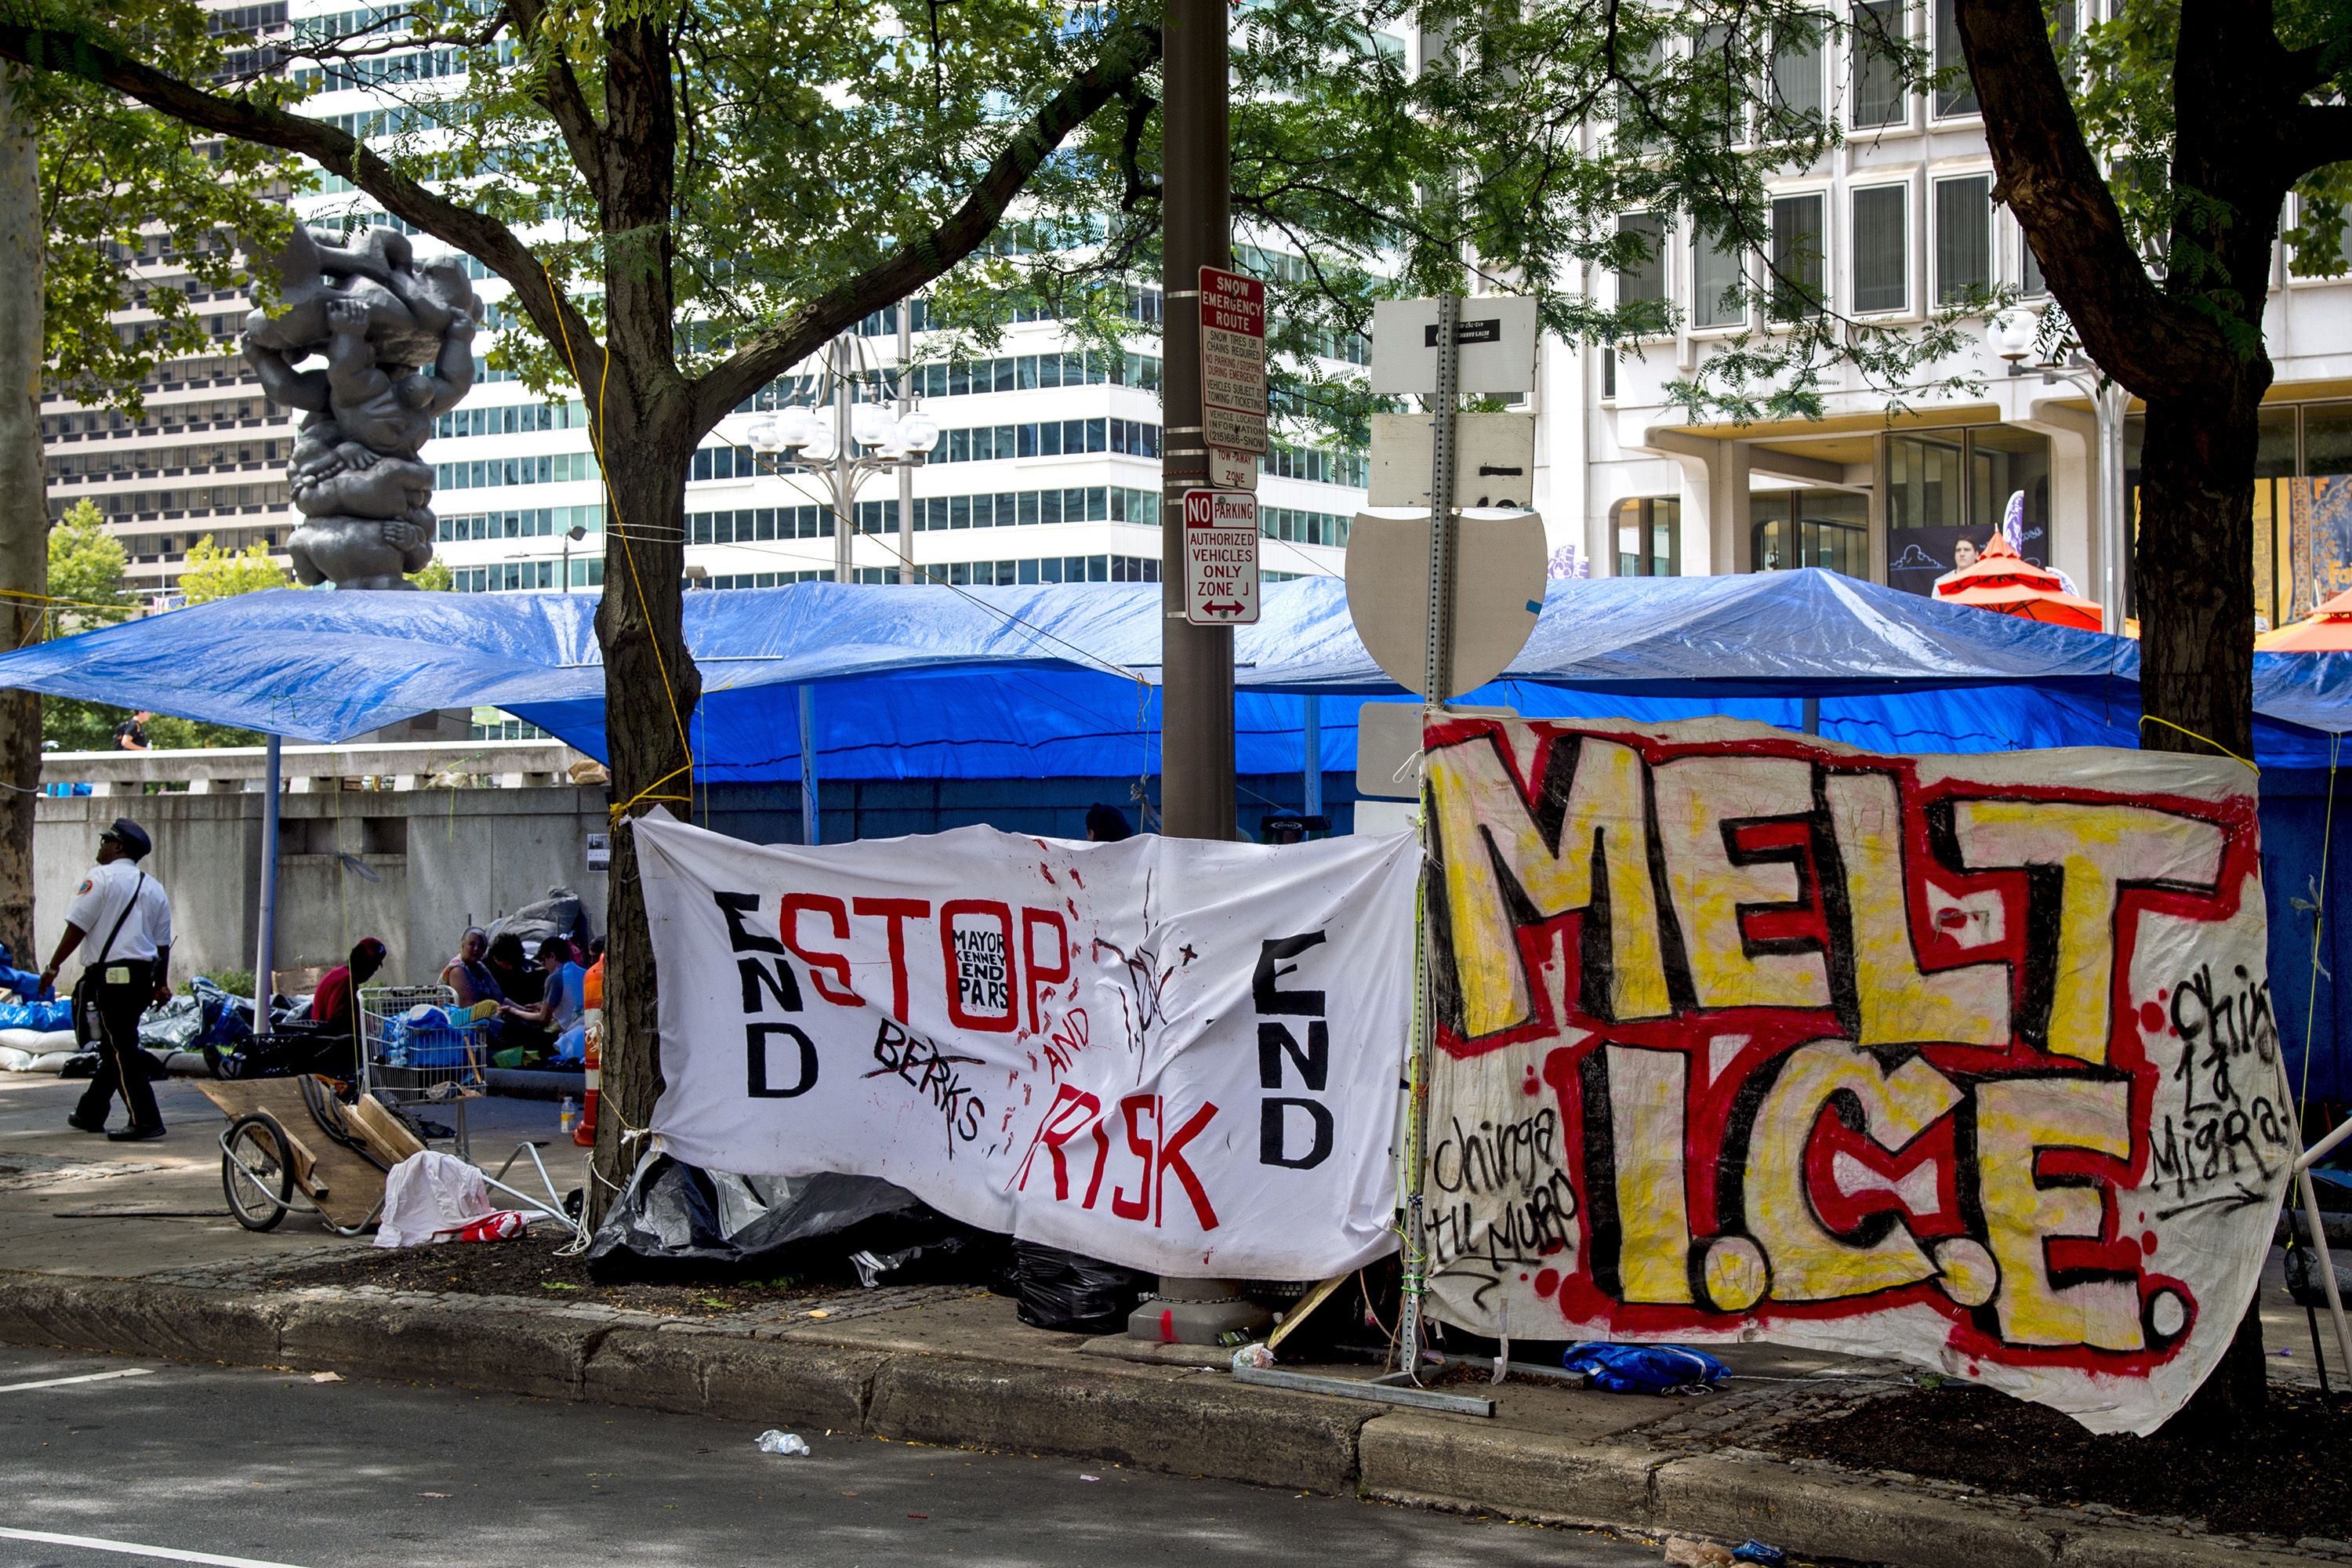 Protesters are camped out on the eastern side of the Thomas Paine Plaza at the Municipal Services Building (near Broad & Arch Streets) July 29, 2018. They moved from the apron of City Hall Saturday, ahead of a city-imposed deadline, protesting the federal Immigration and Custom Enforcement agency (ICE).